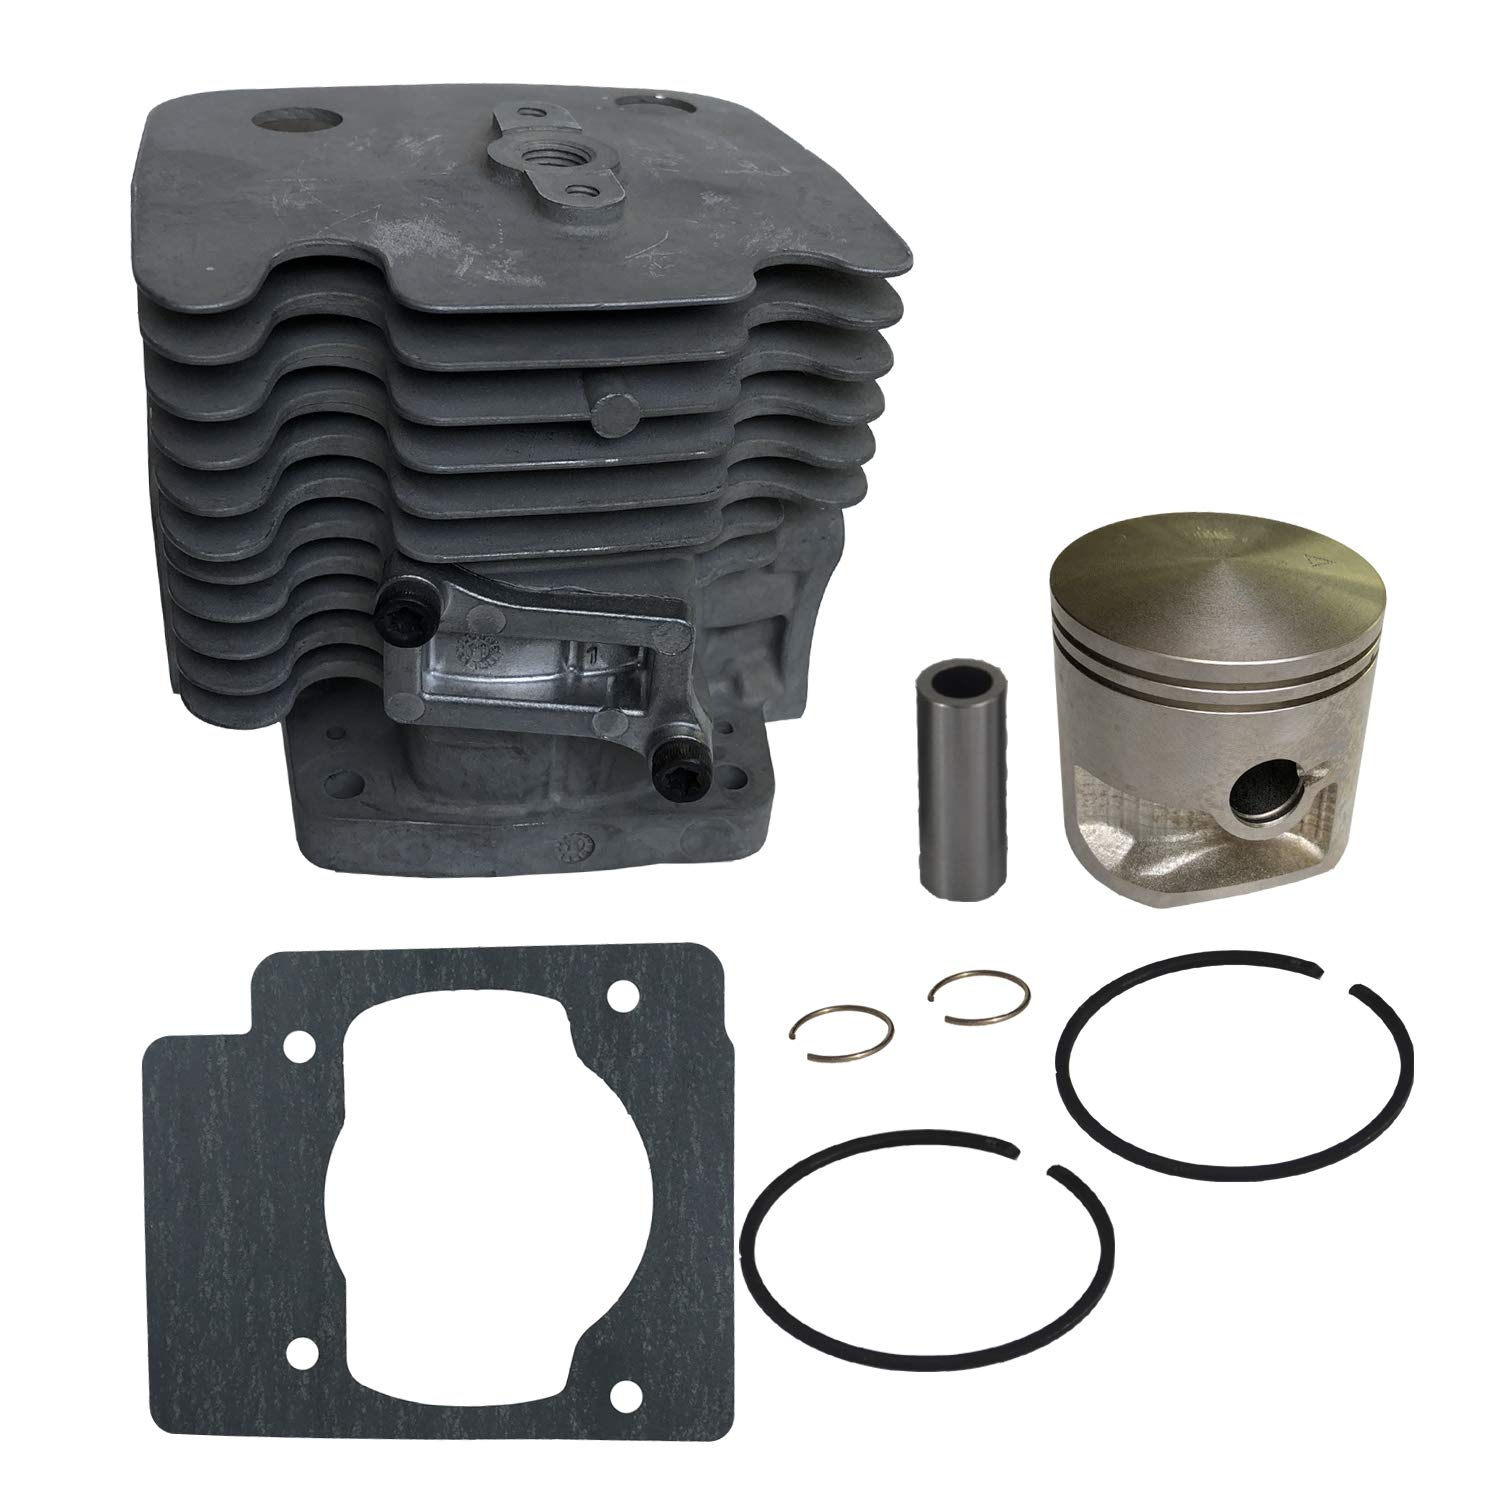 JERDE Cylinder Kit 51mm for Redmax EBZ8500 EBZ8500RH Backpack Blowers [#577 42 40-01]